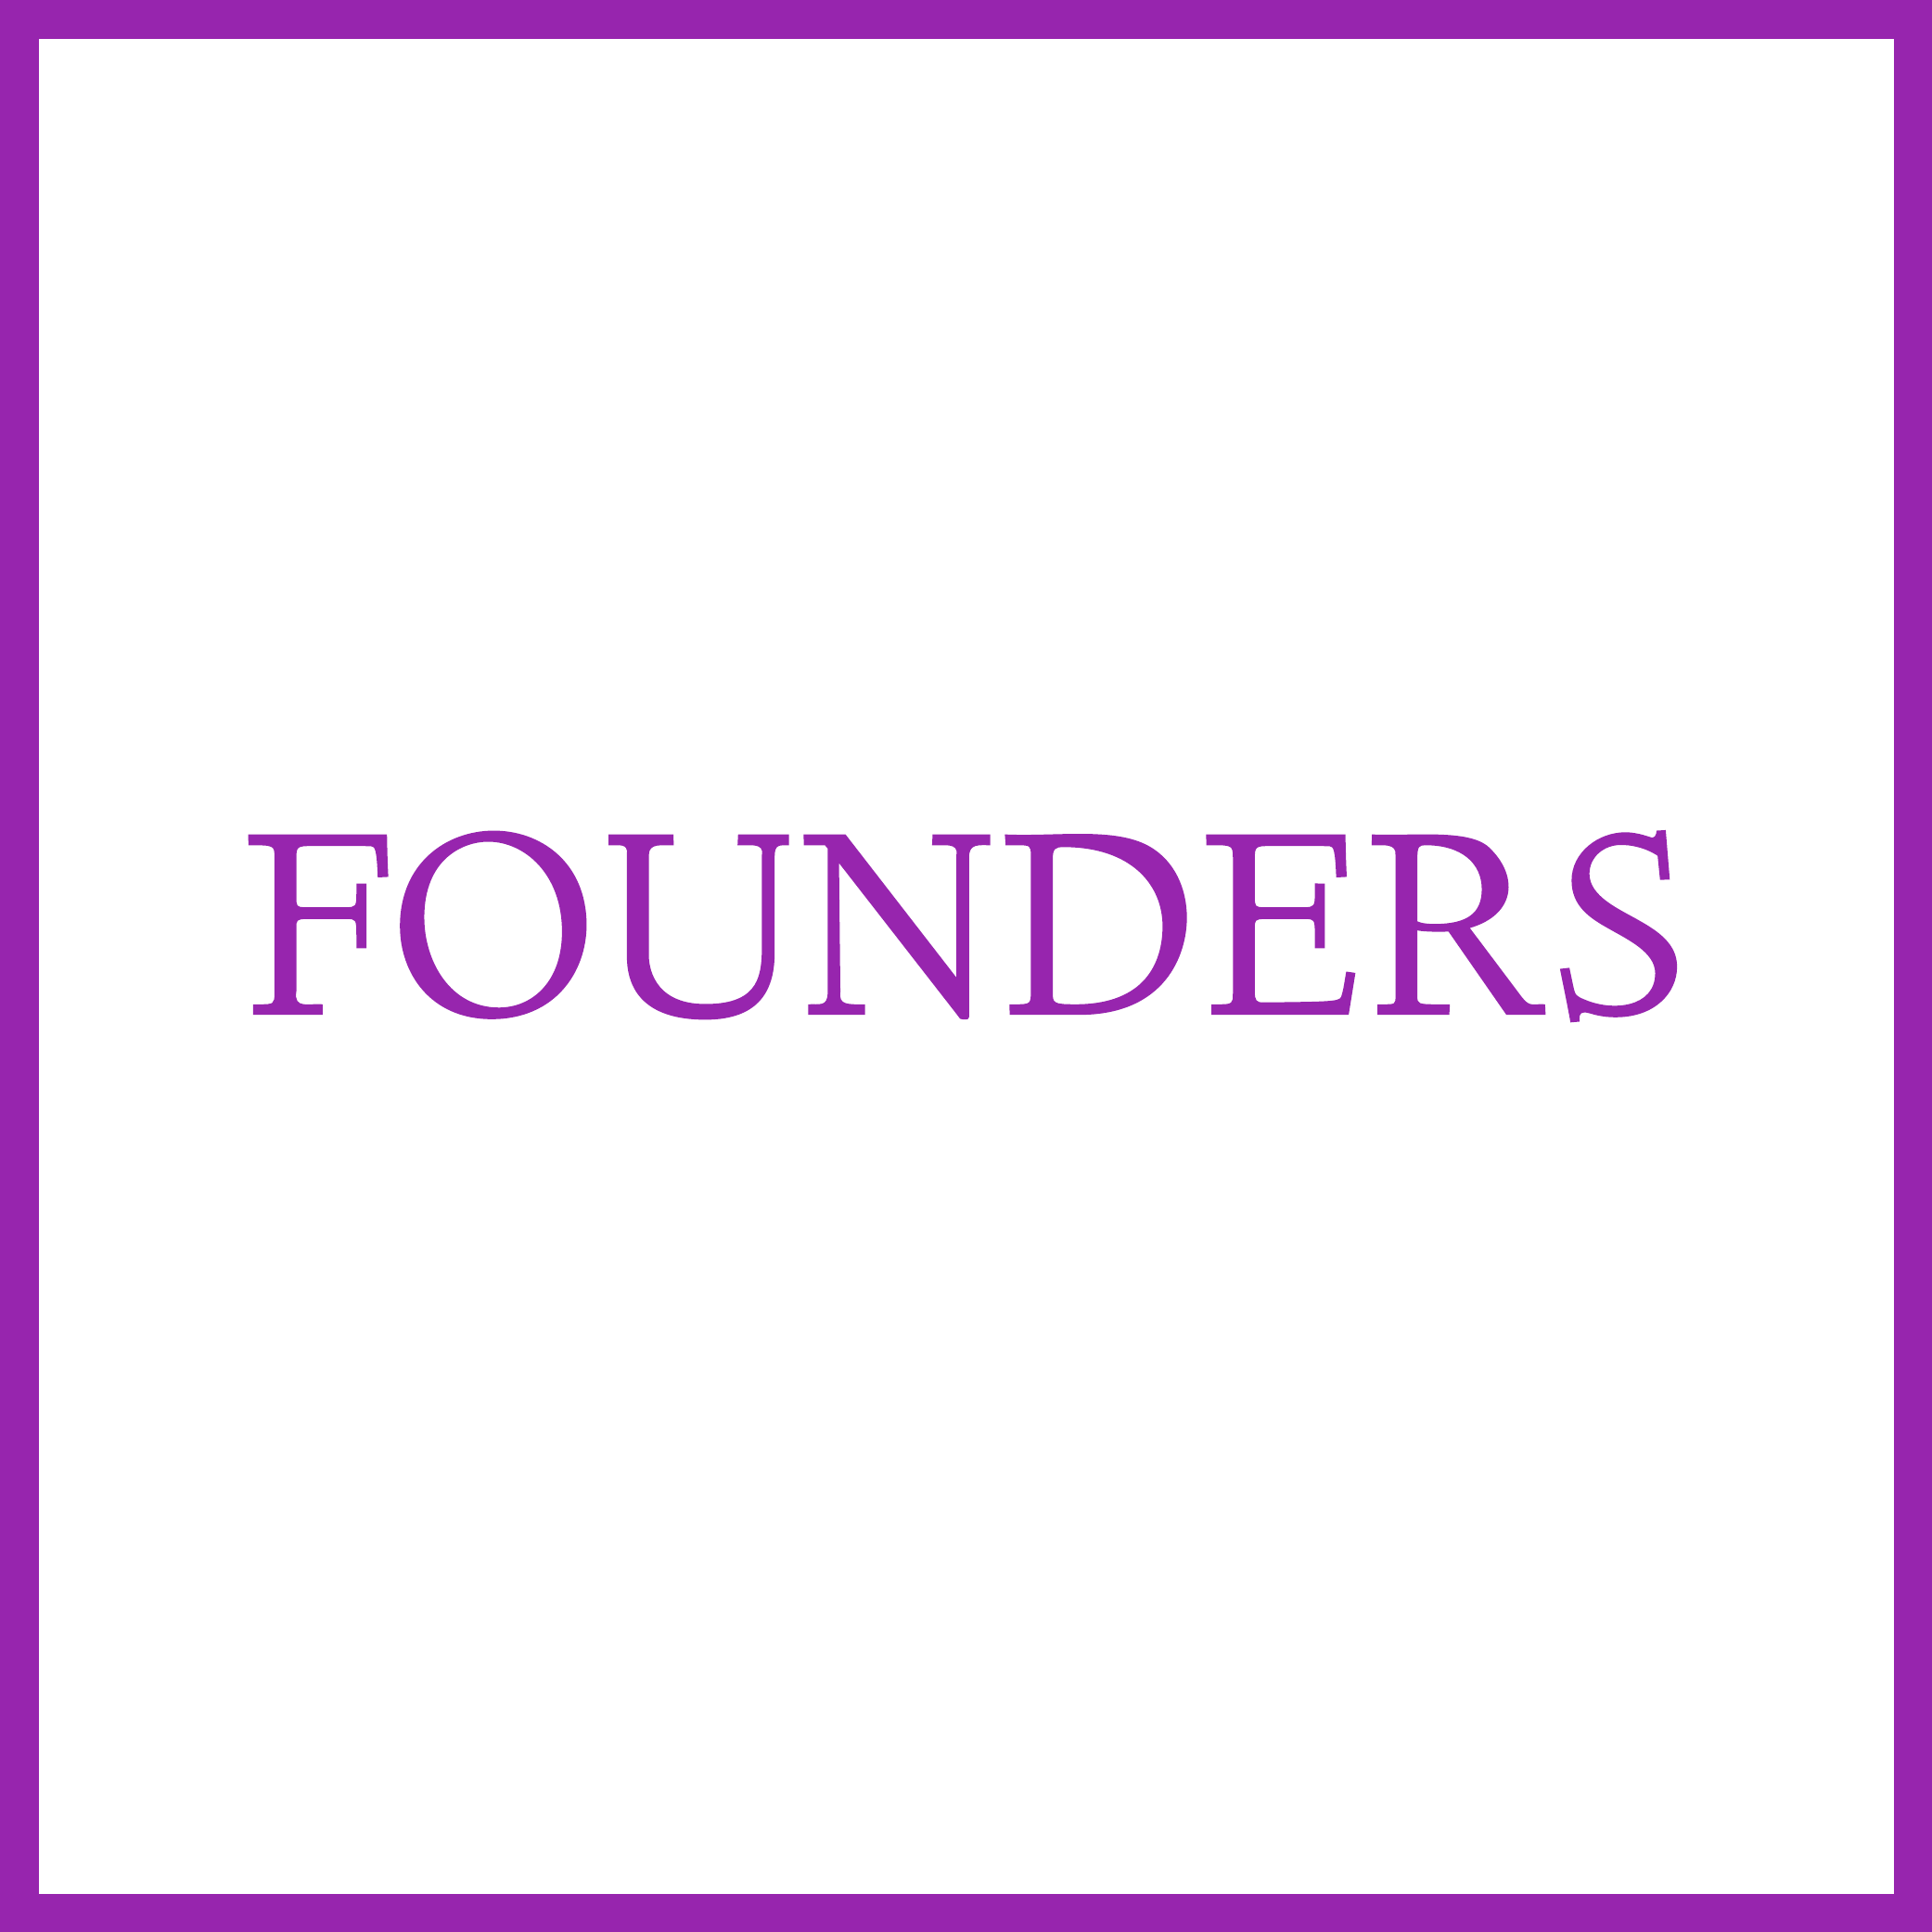 FOUNDERS (1).png